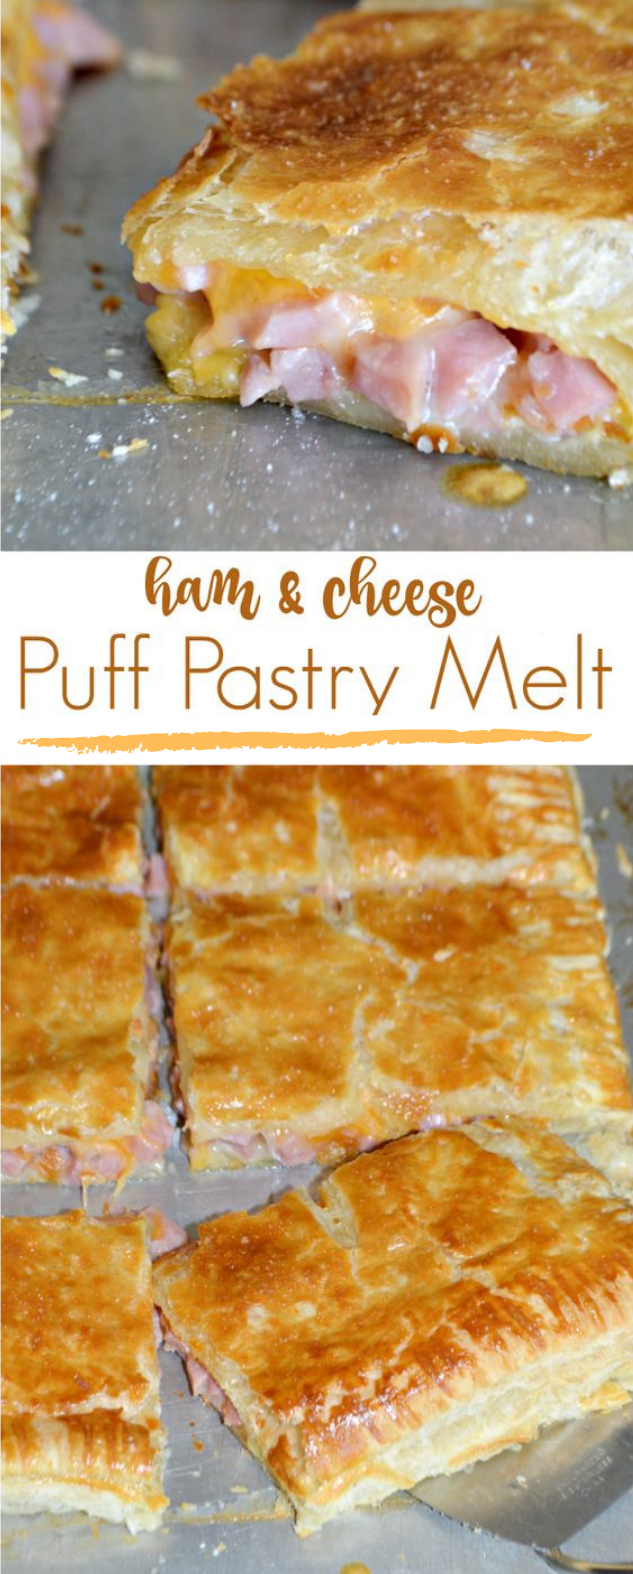 HAM AND CHEESE PUFF PASTRY MELT #dinner #cheese